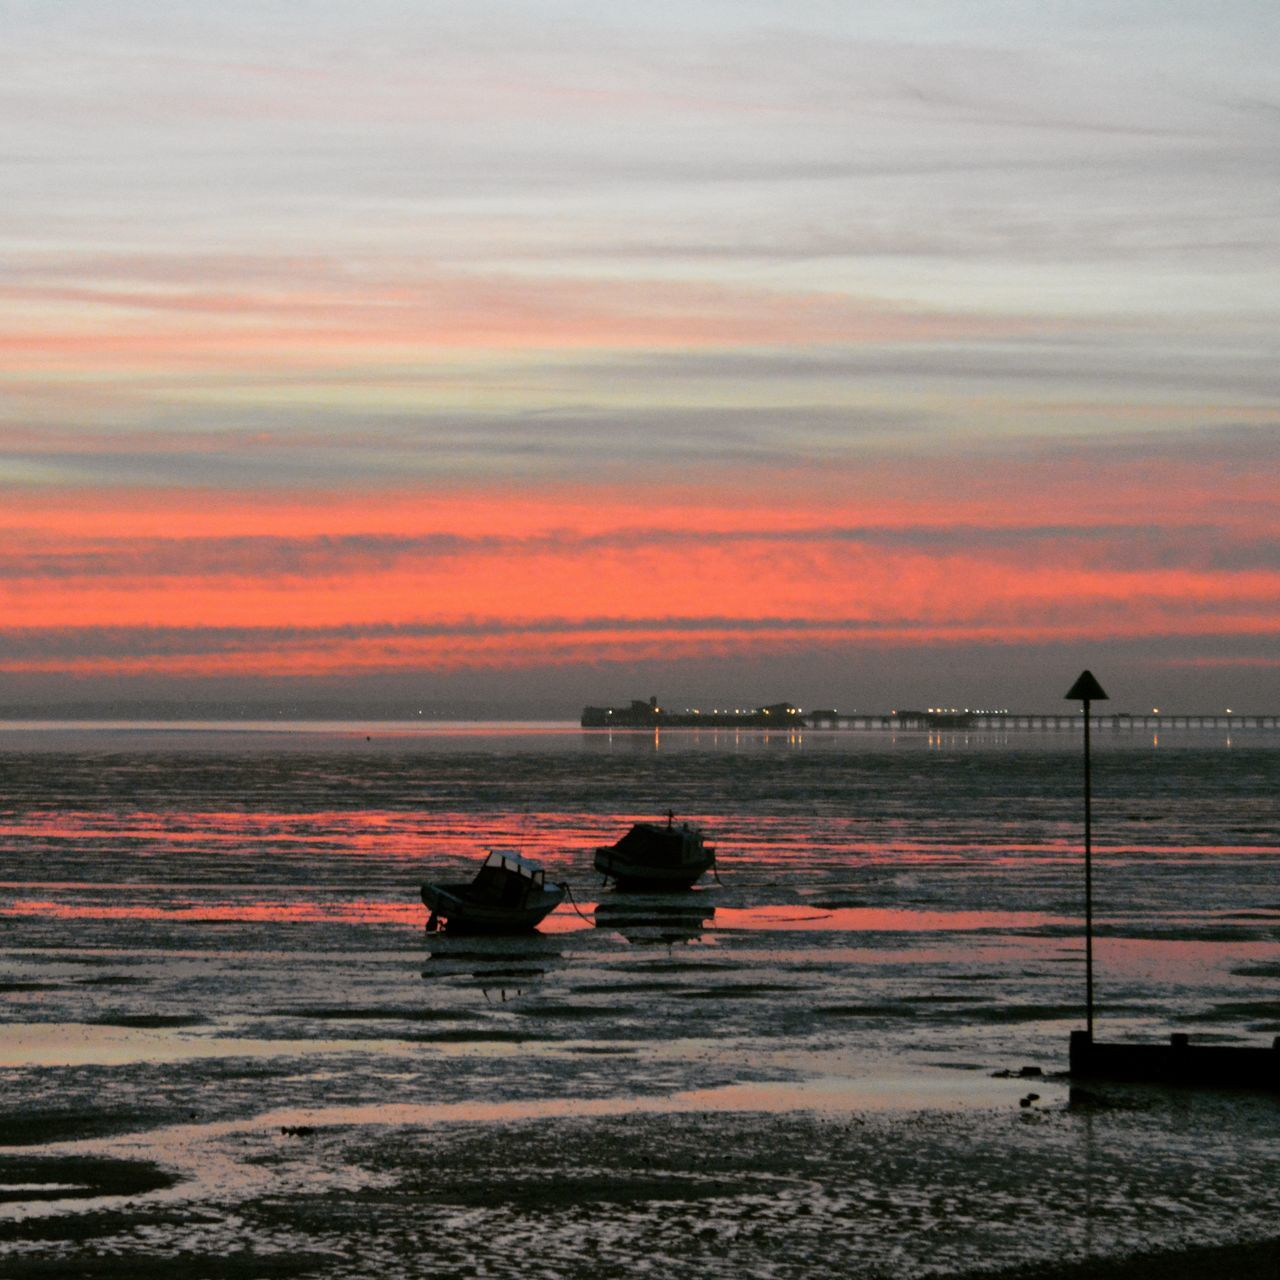 Sunset Sky Outdoors Silhouette Beauty In Nature Water Scenics Sea Nature Cloud - Sky No People Tranquility Tranquil Scene Beach Horizon Over Water Day Southend On Sea Nautical Vessel Beauty In Nature Rippled Evening Low Angle View